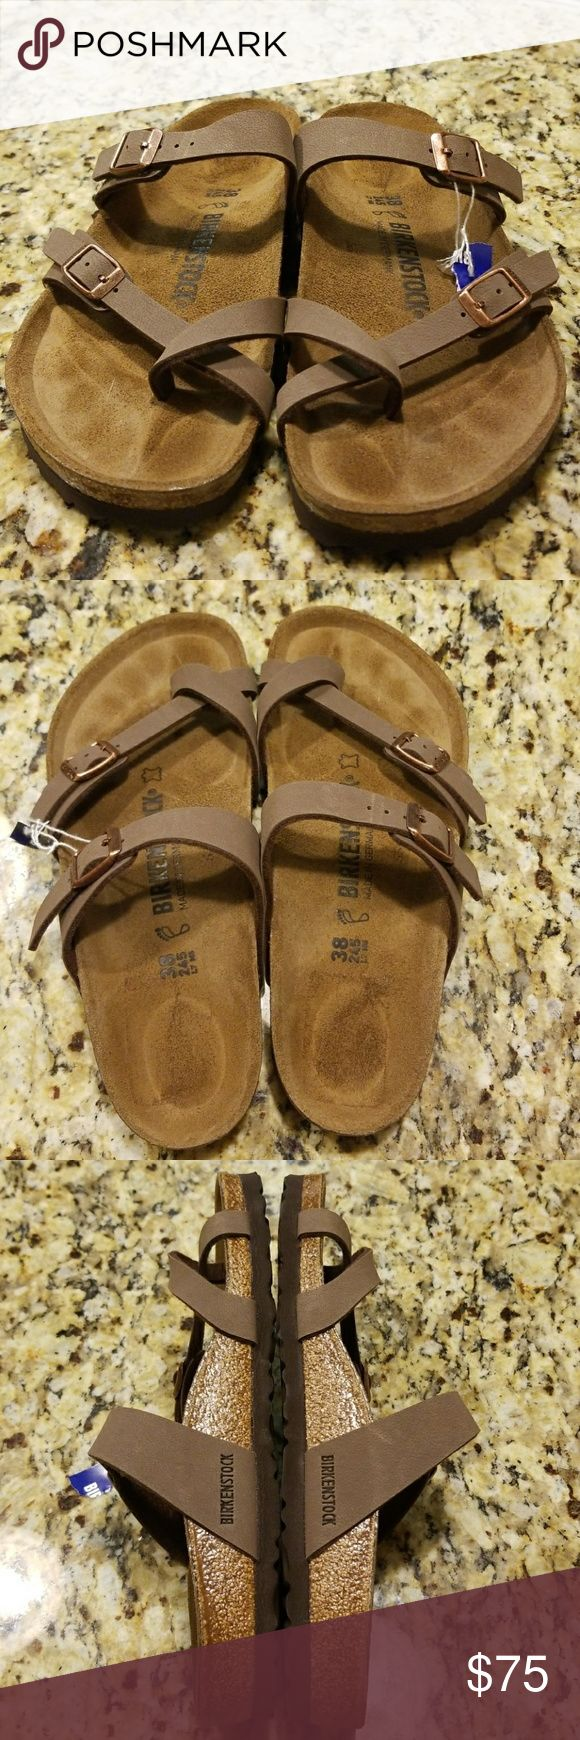 WOMENS BIRKENSTOCK MAYARI Suede-lined cork footbed combines with a cushy EVA sole to provide ultimate comfort in a casual sandal fashioned with adjustable straps for a custom fit.  (NEW)SANDALS WERE FLOOR MODEL INSOLE DOES HAVE FOOTPRINT SOLE DOES NOT SHOW ANY WEAR UPPER STRAPS A LITTLE DIRTY PLEASE REVIEW ALL PIX😊  COLOR:MOCHA Birkenstock Shoes Sandals